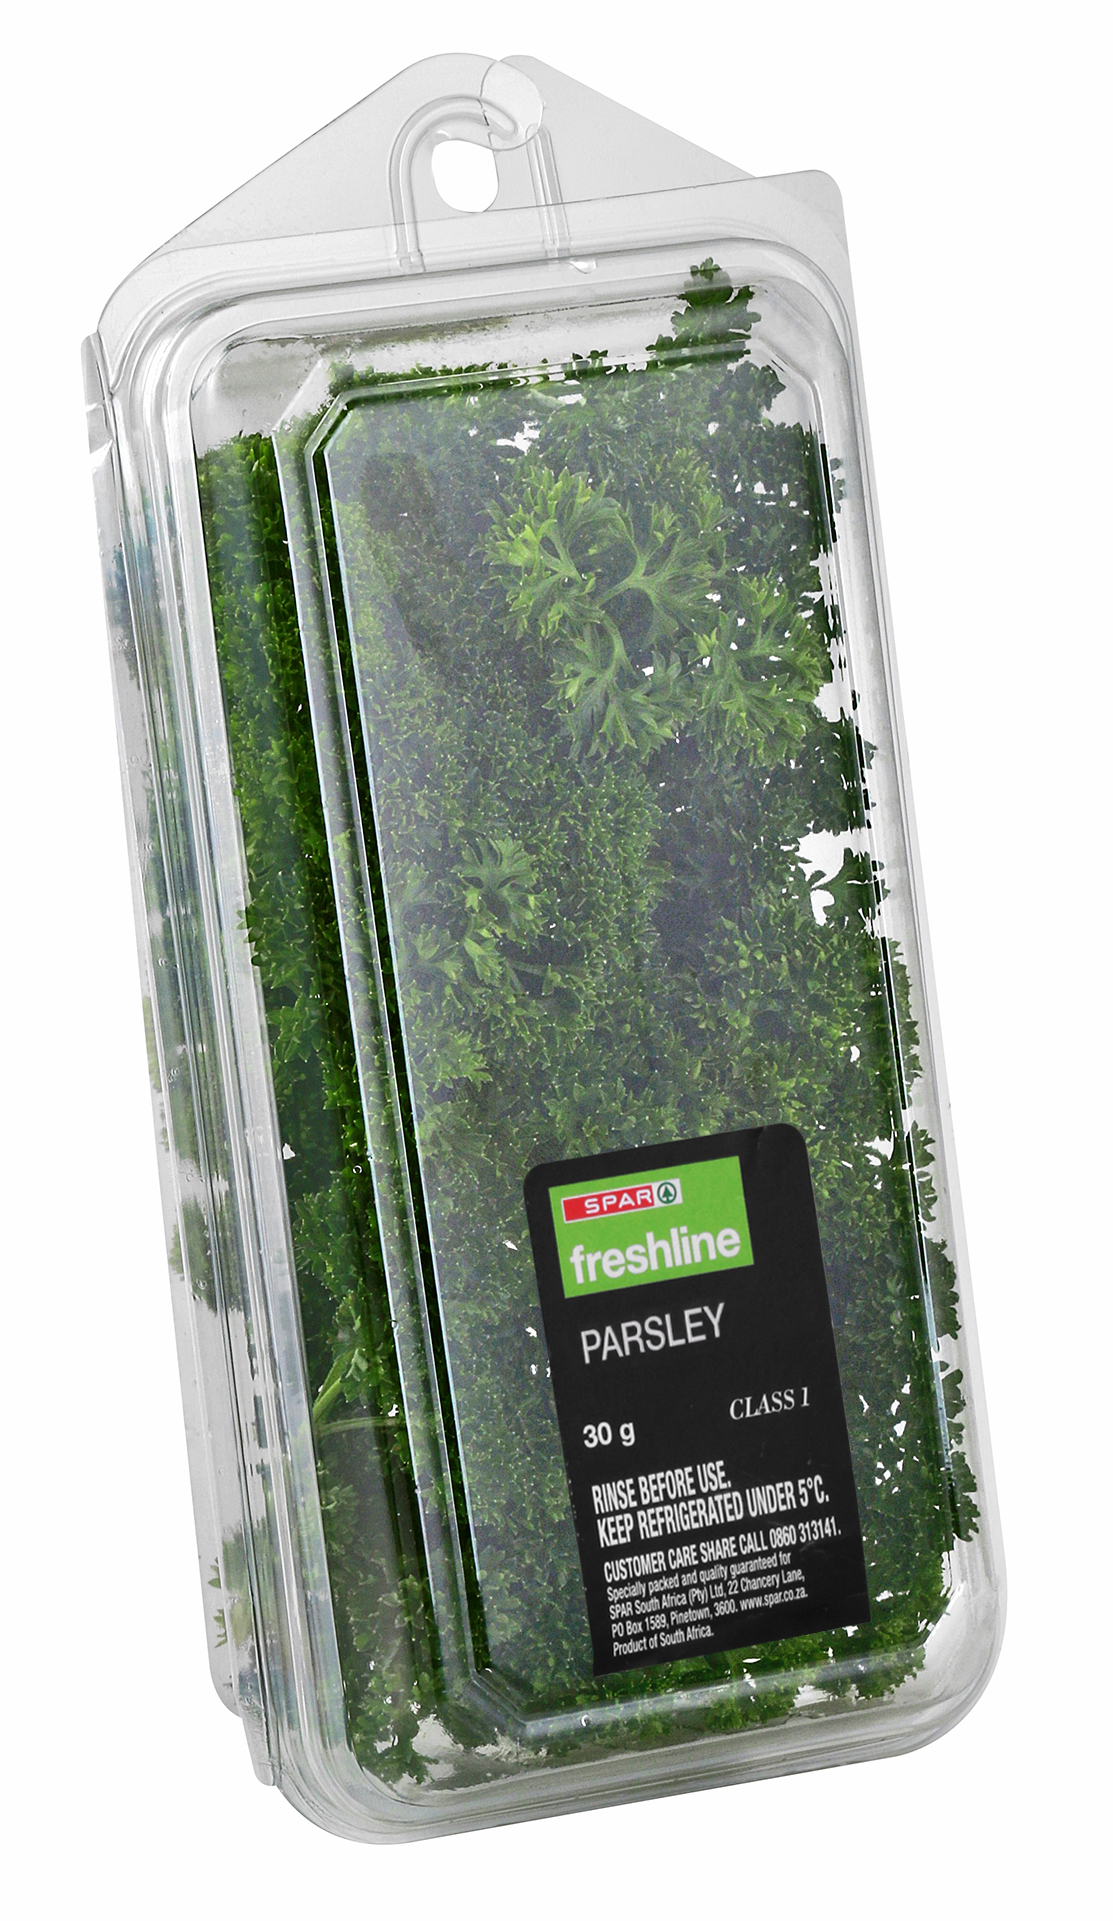 freshline parsley